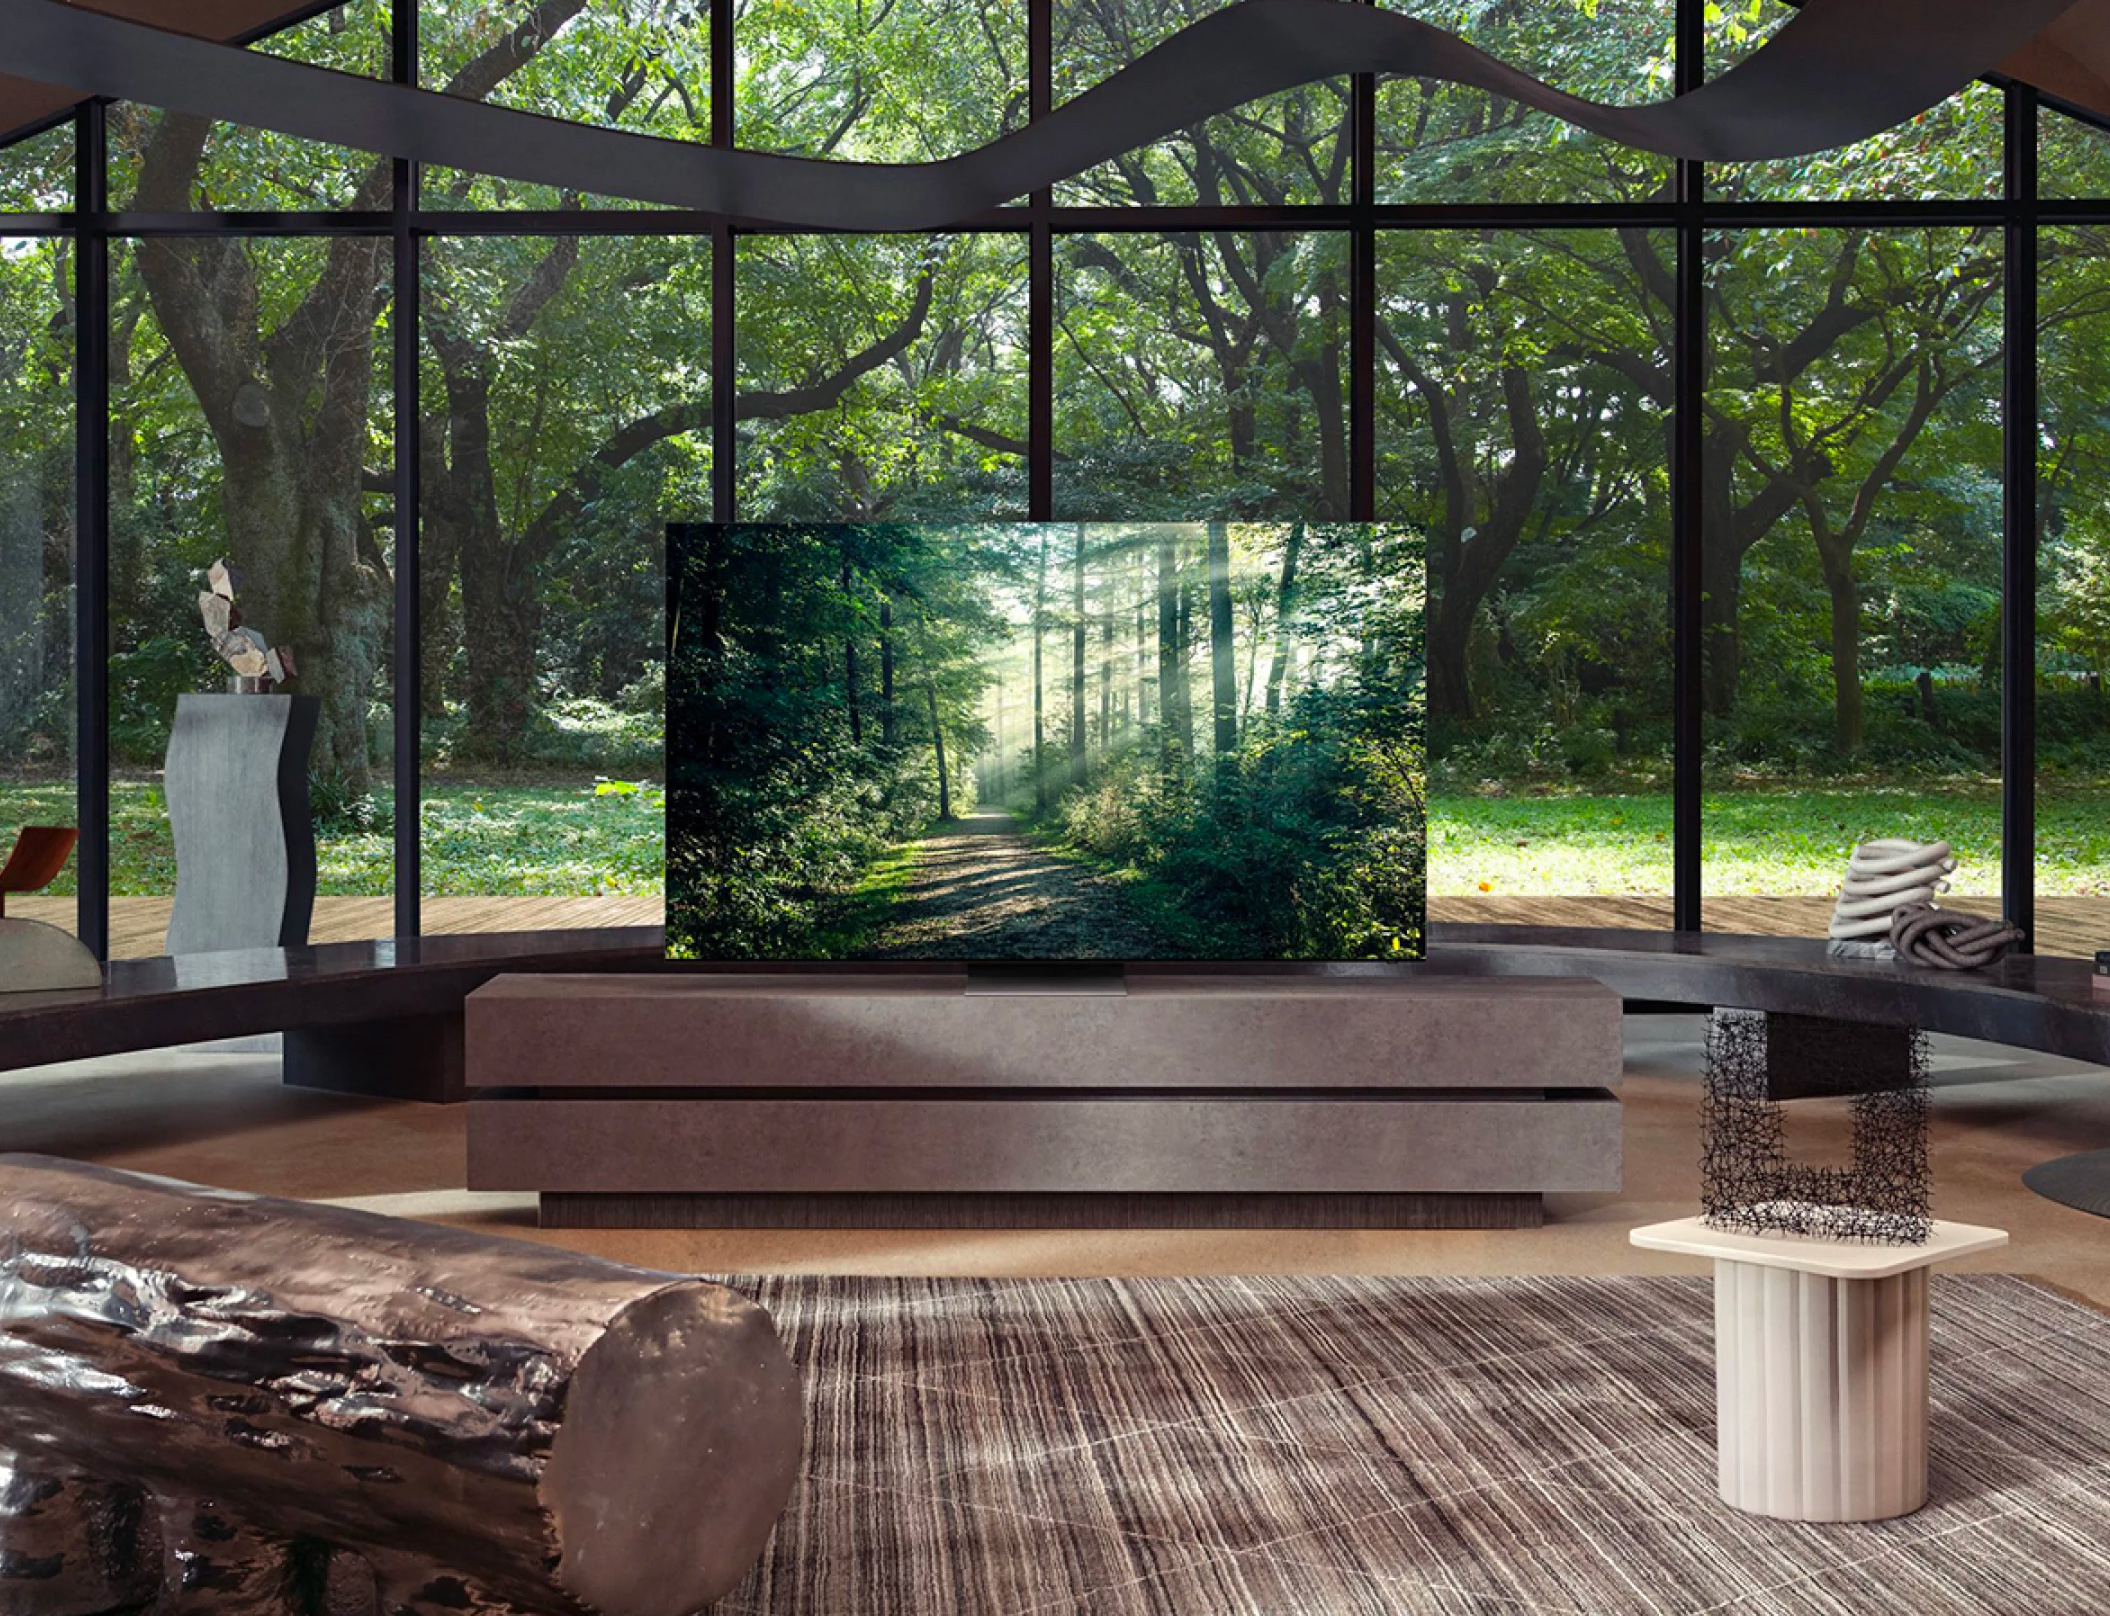 Samsung Introduces QLED Technology in its Flagship 8K TVs at werd.com